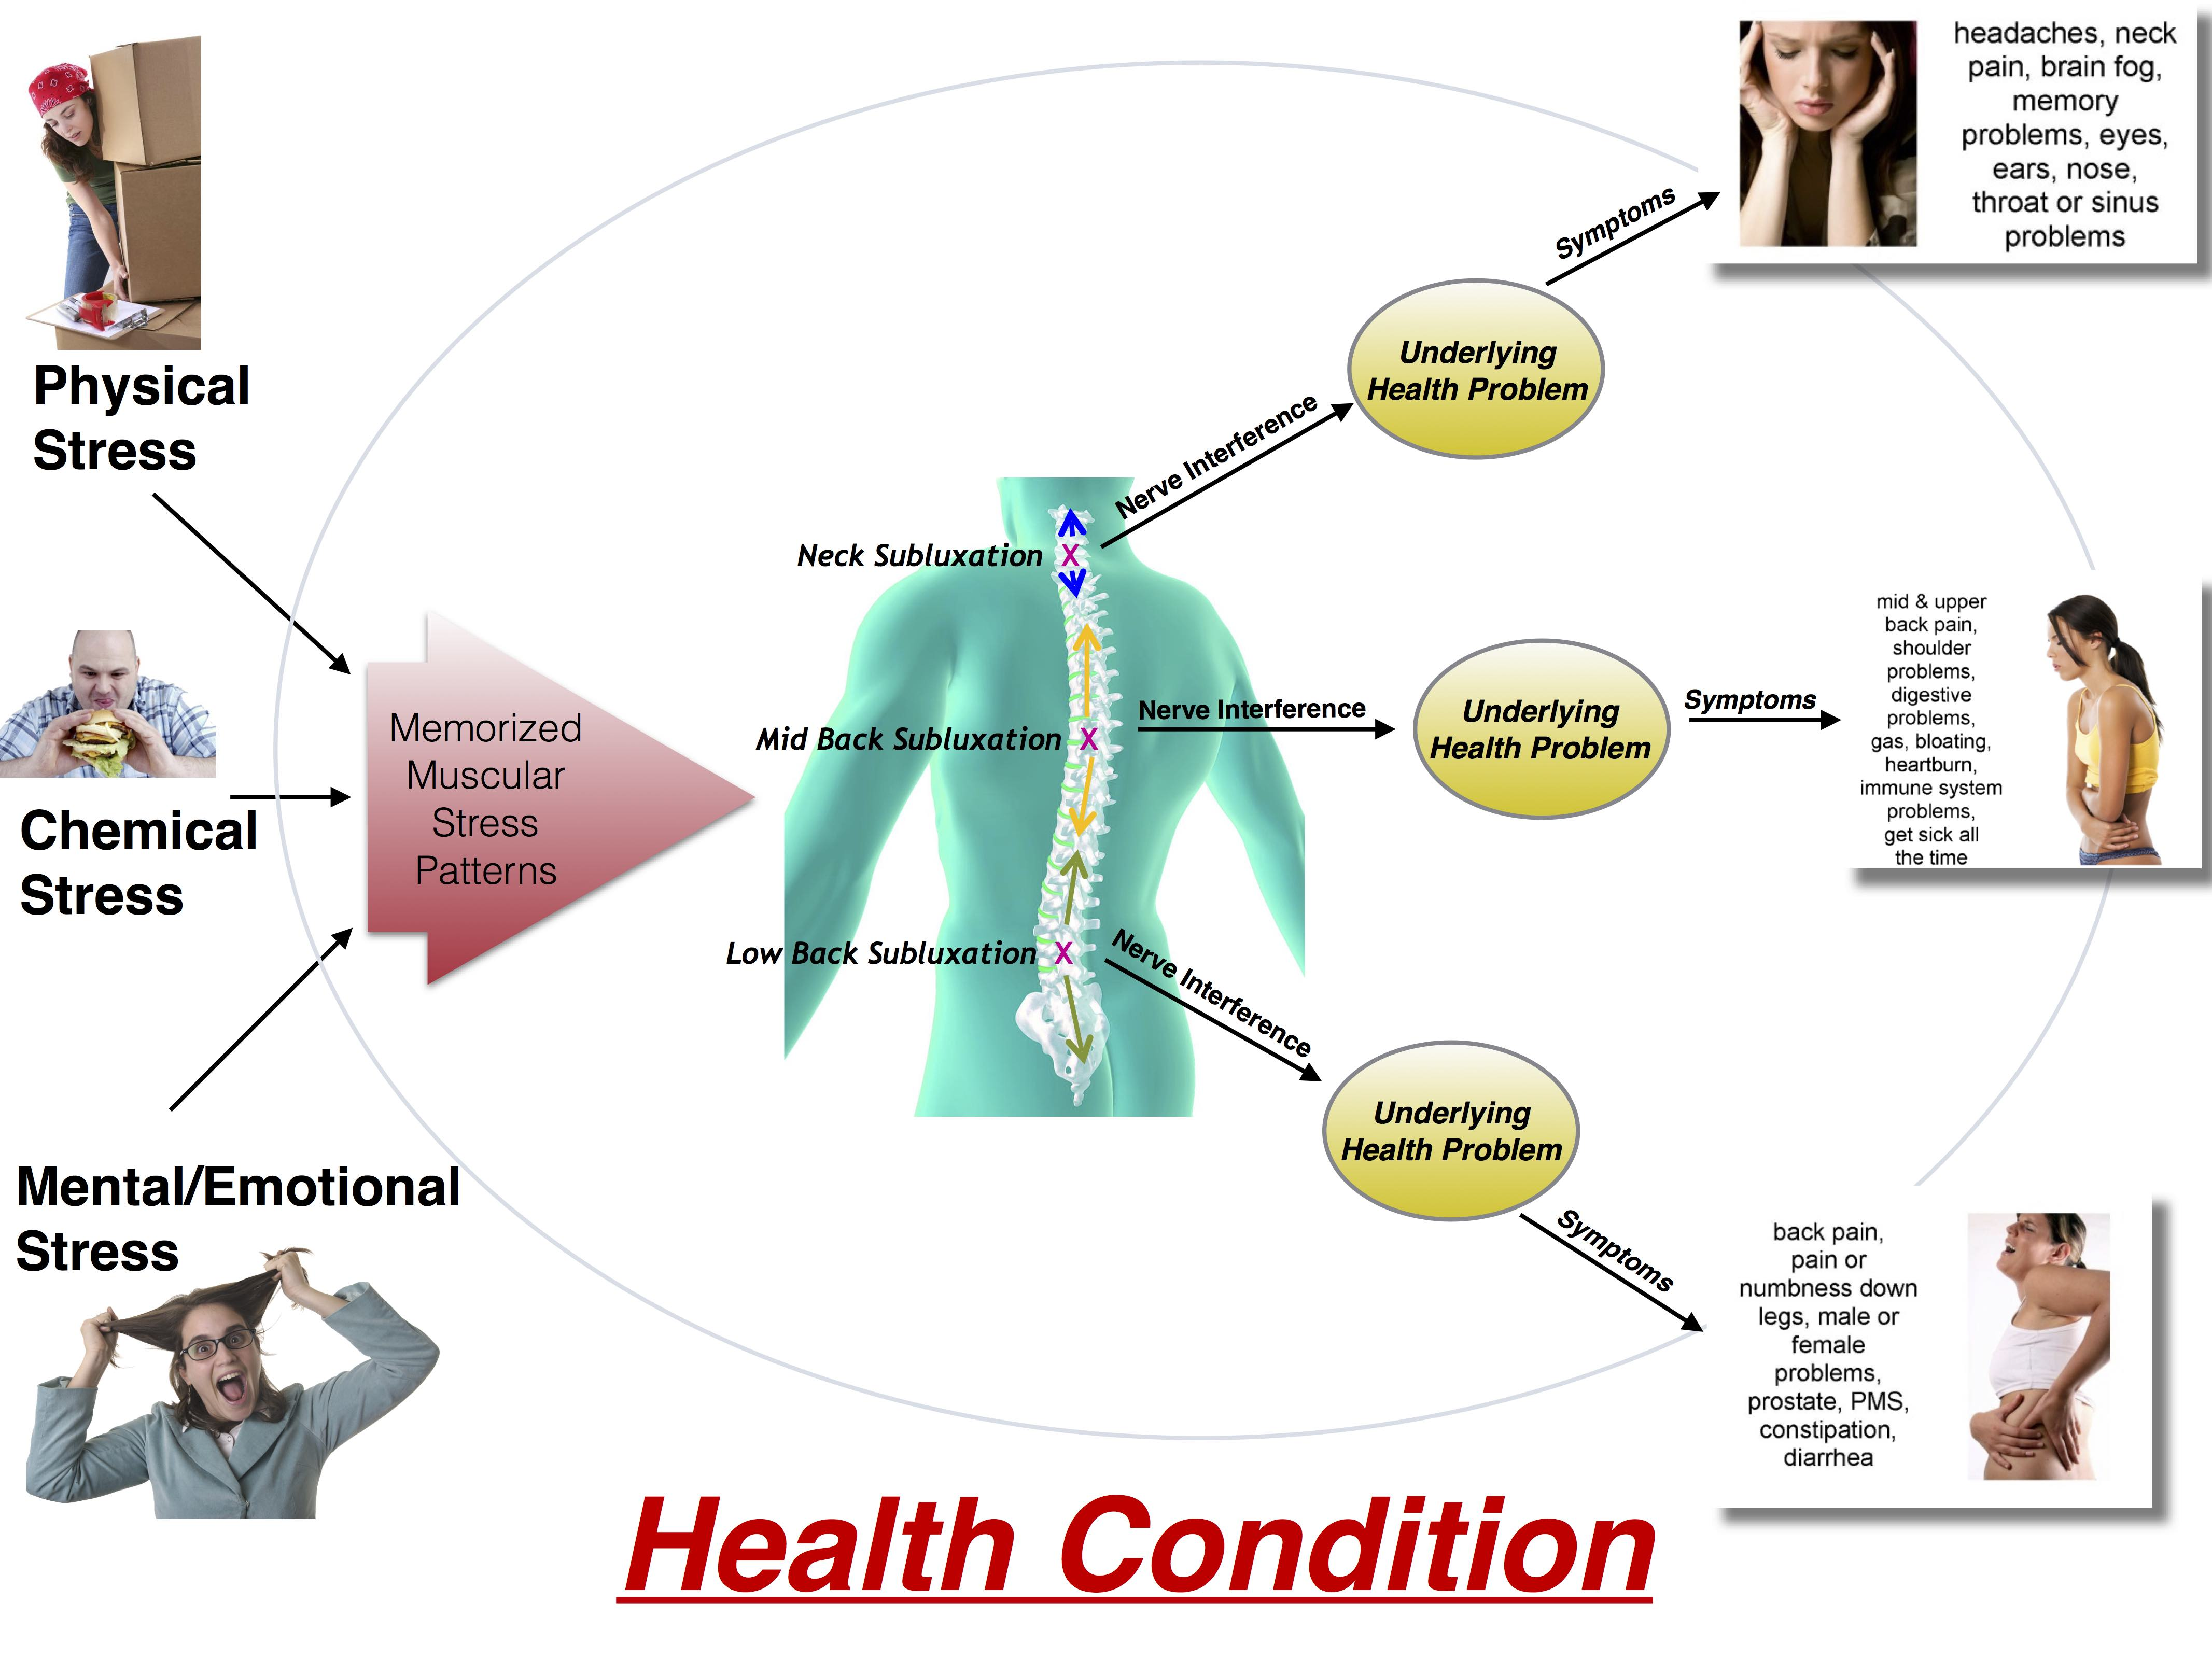 Accumulated Health Conditons